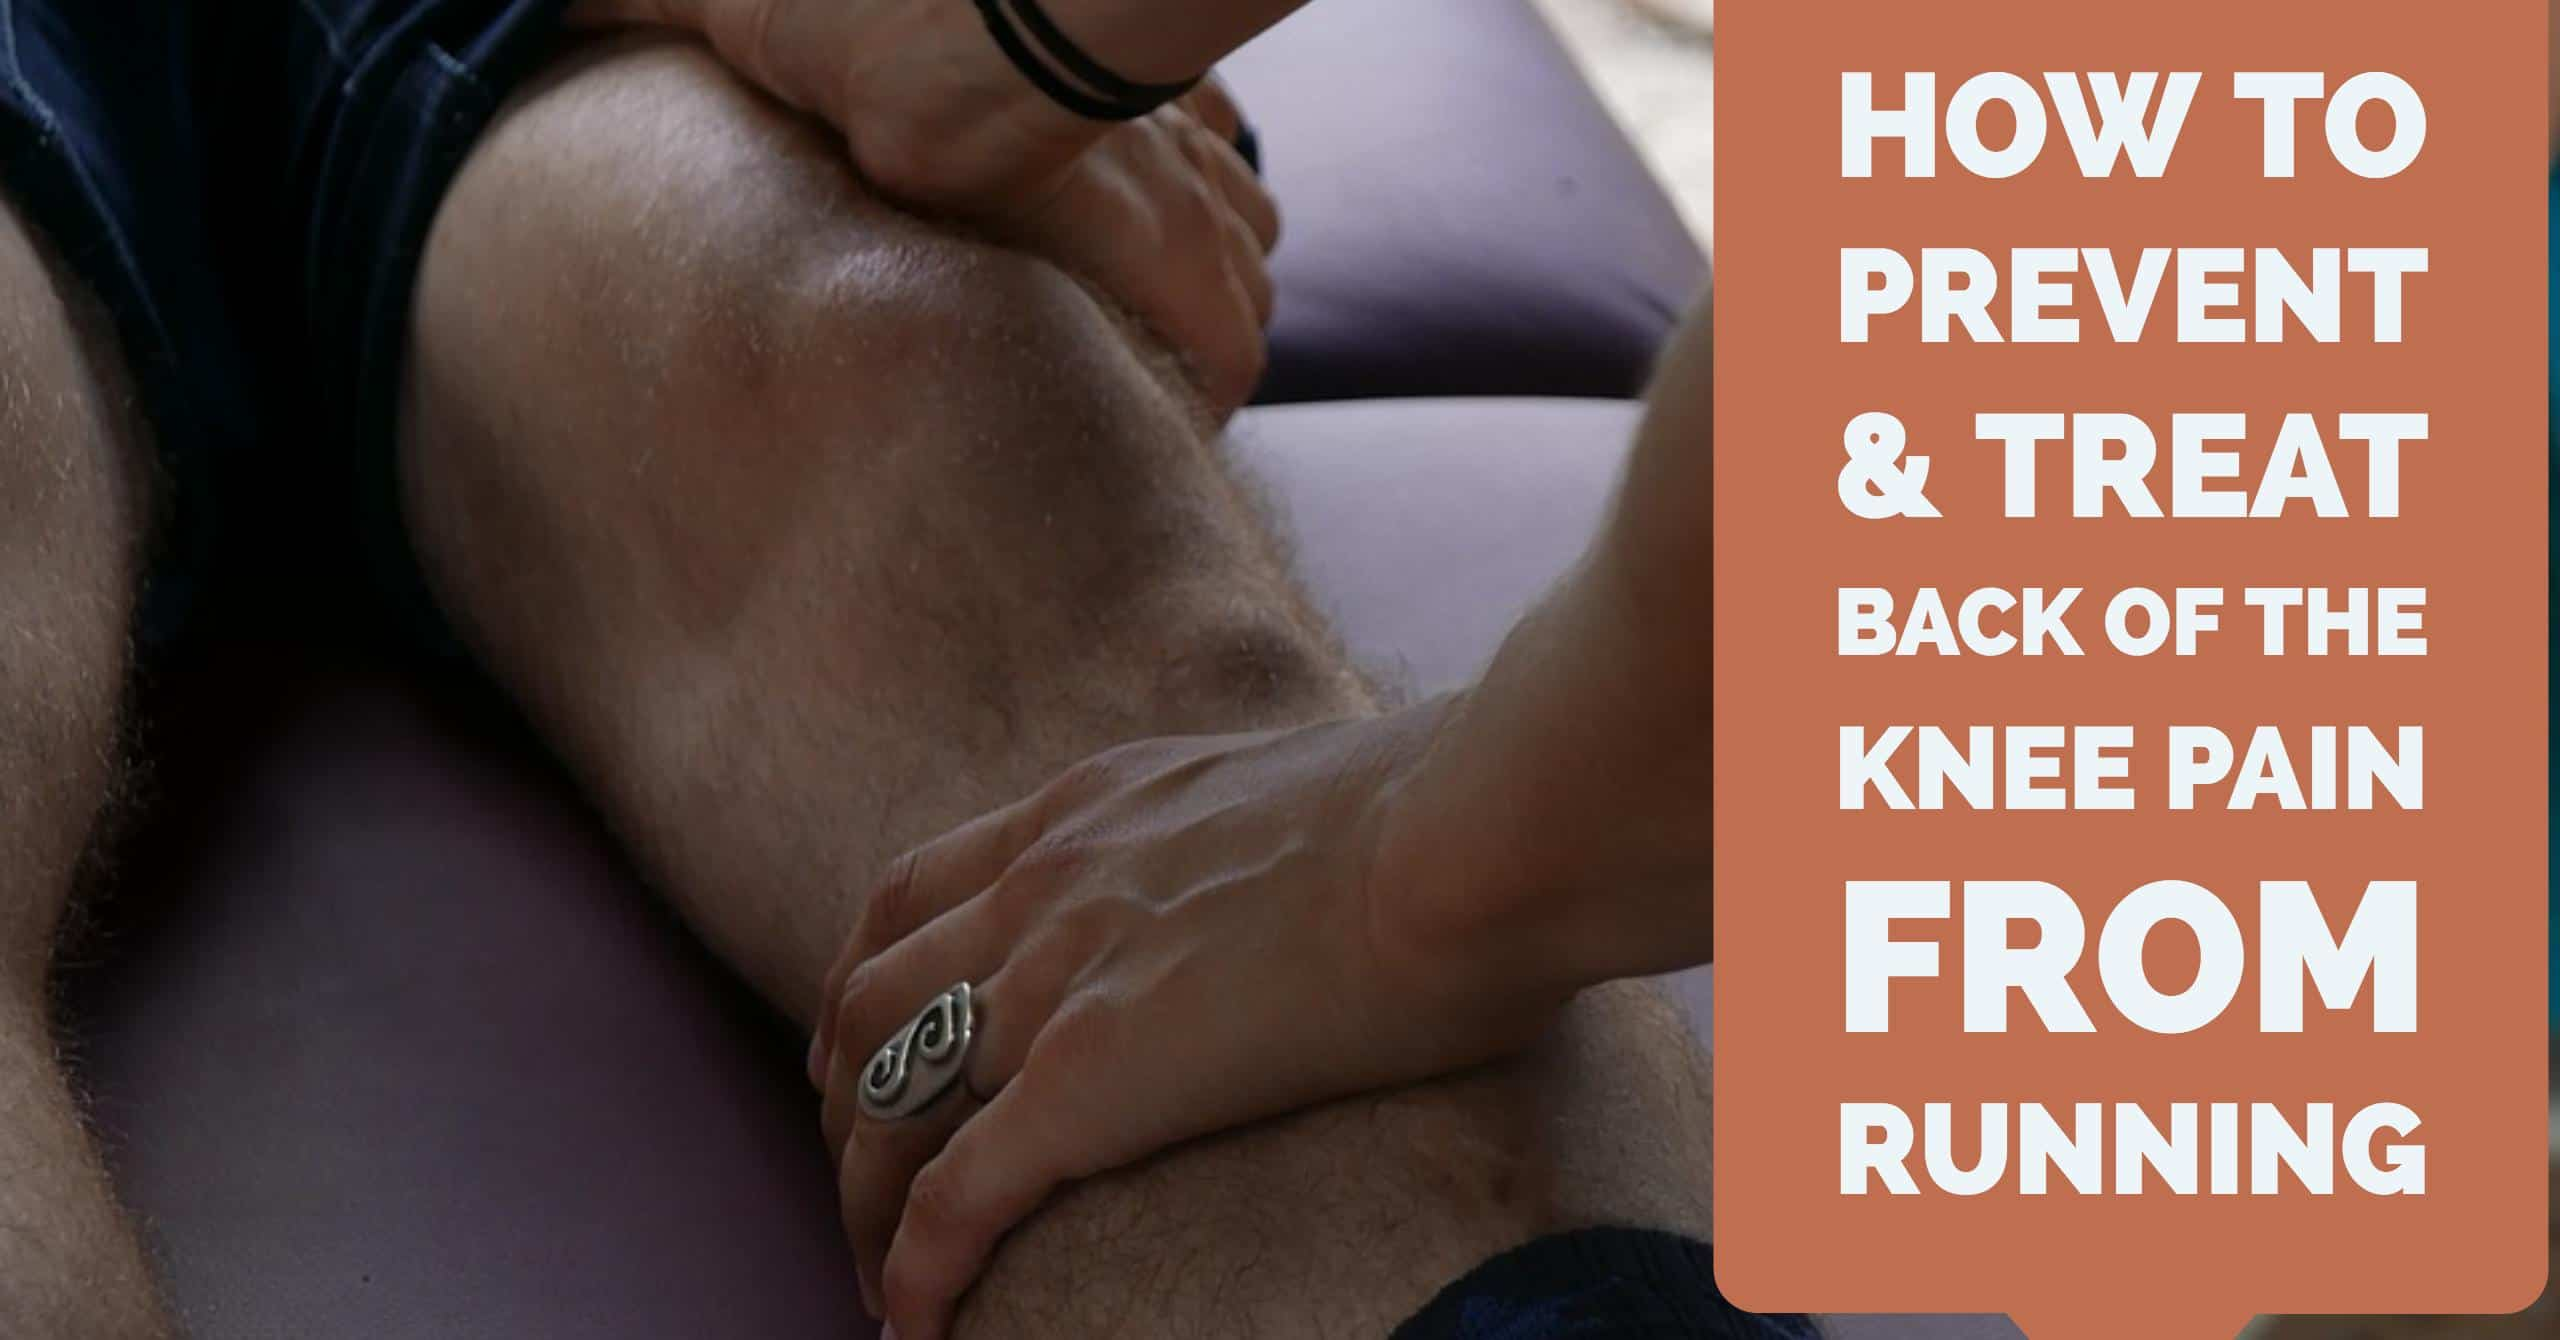 Knee pain from running can be one of the disappointing injuries to runners especially if it radiates from the back of your knee. We break down how to prevent & treat back of the knee pain from running.